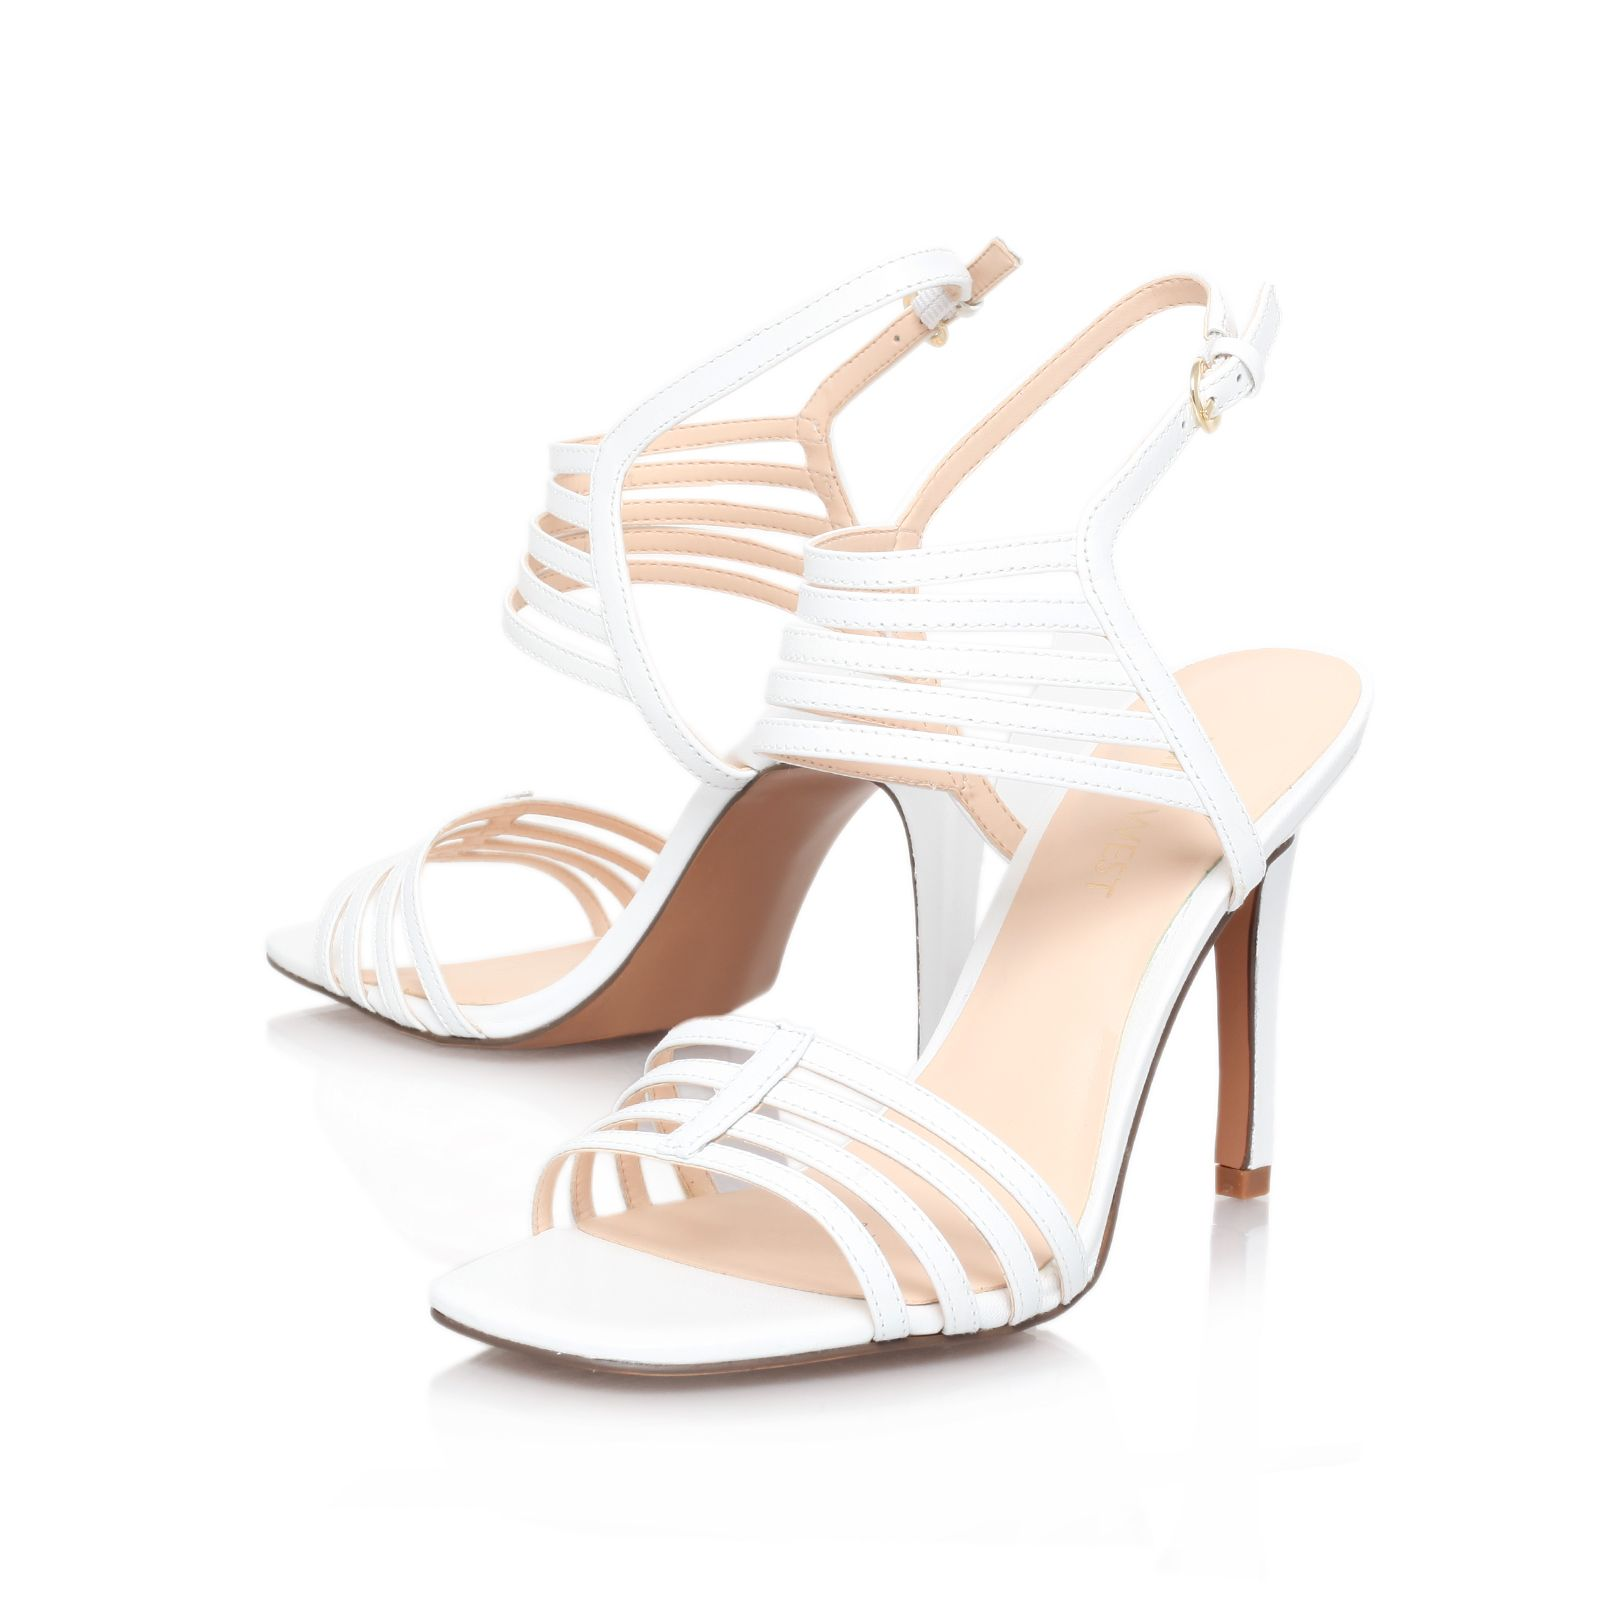 Katherine high heel sandals